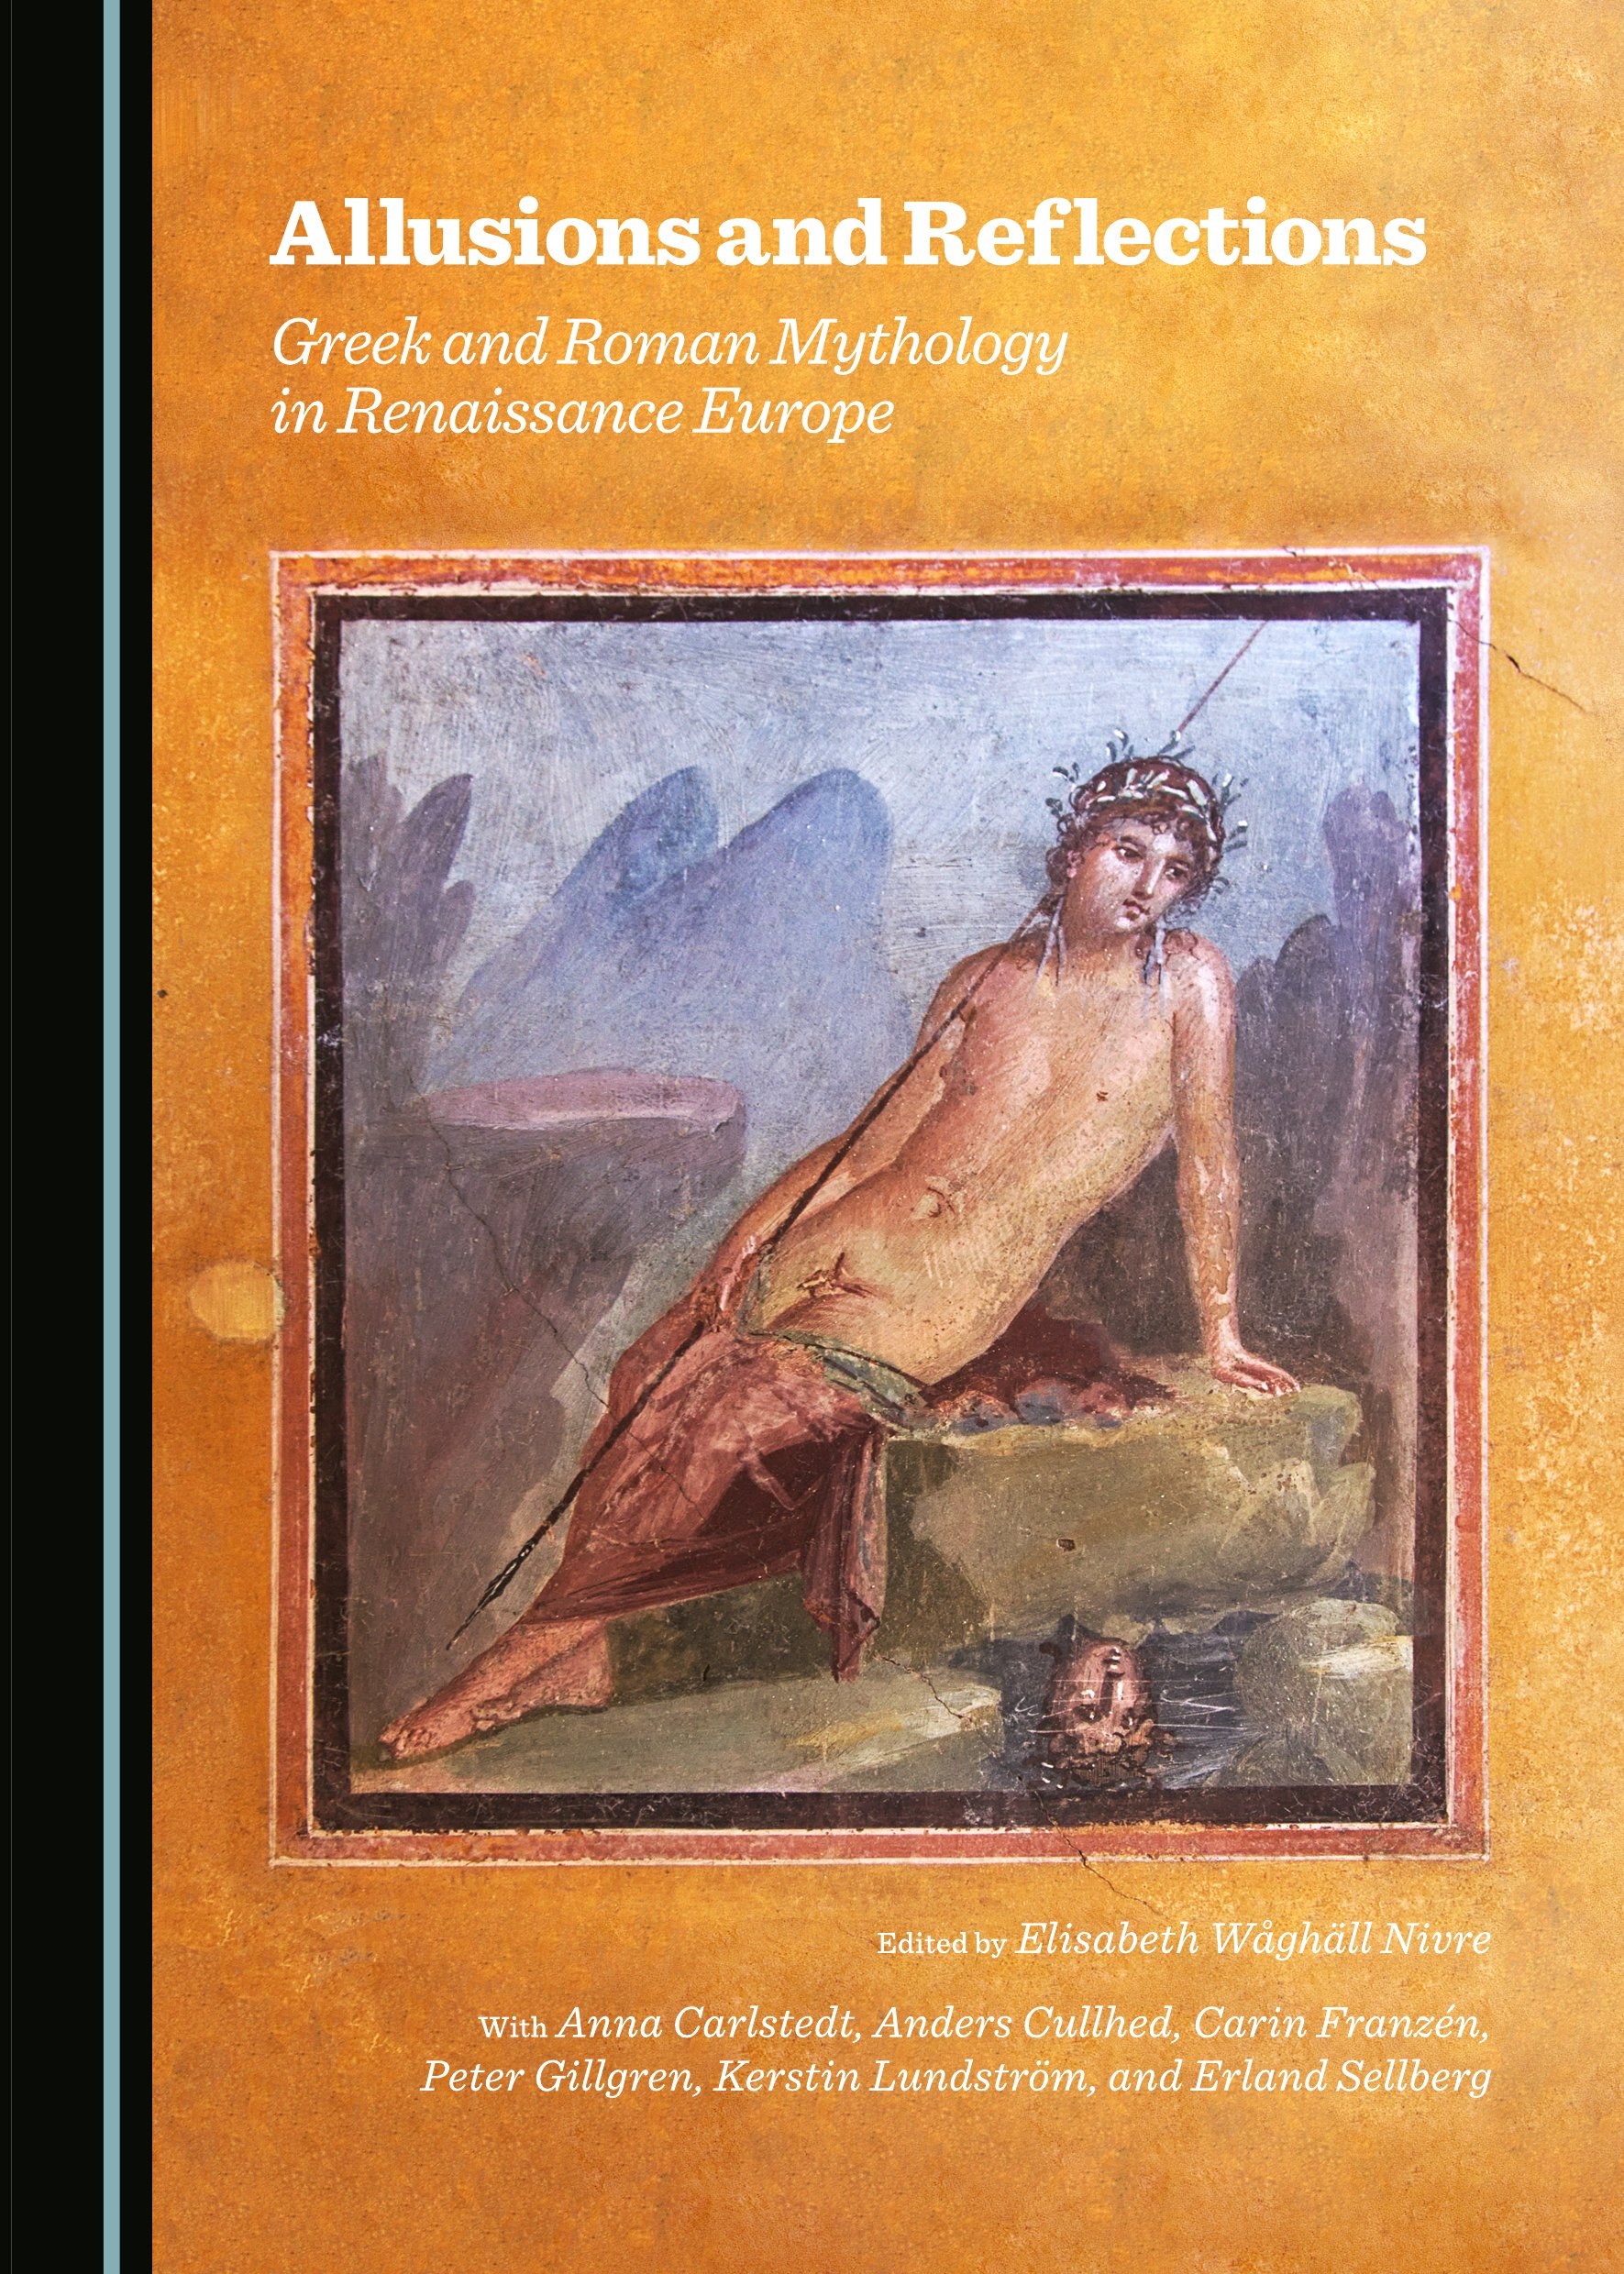 Allusions and Reflections: Greek and Roman Mythology in Renaissance Europe